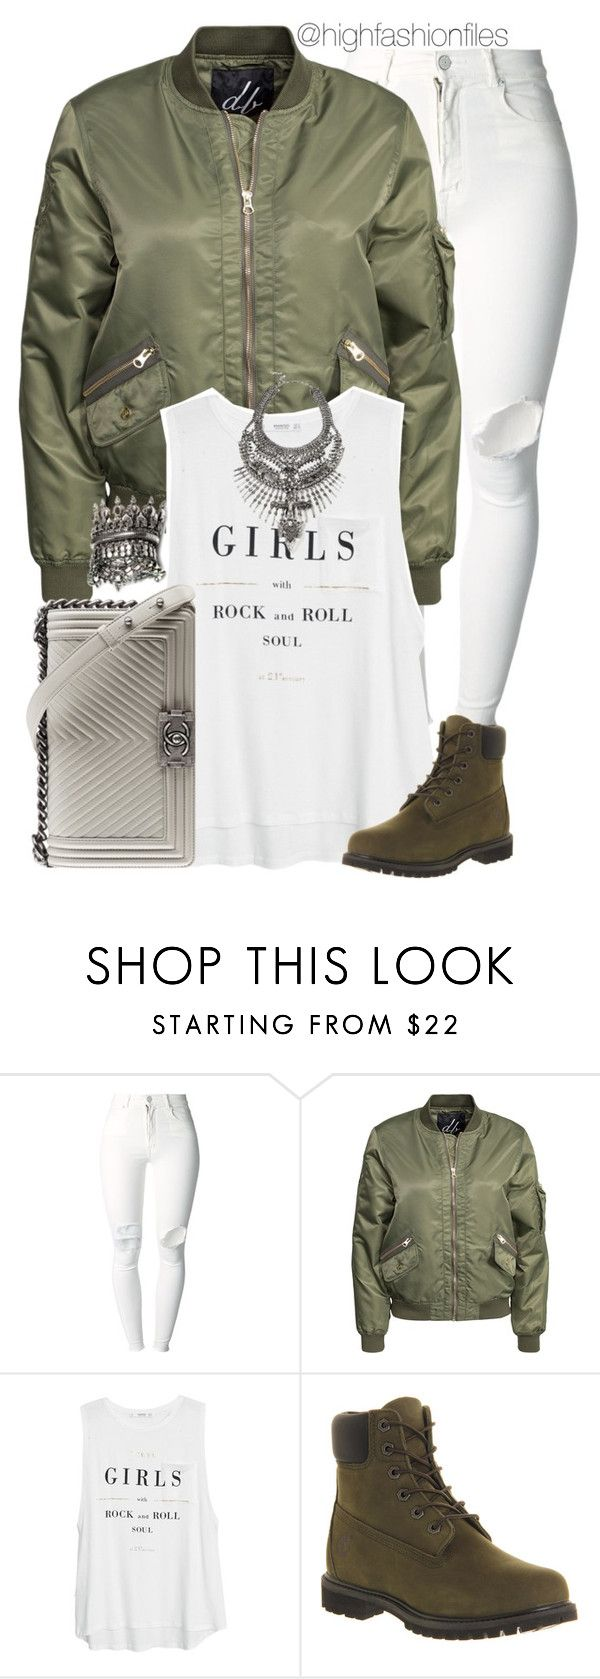 """""""Let's Get Casual"""" by highfashionfiles ❤ liked on Polyvore featuring (+) PEOPLE, D. Brand, MANGO, Timberland, DYLANLEX and Chanel"""